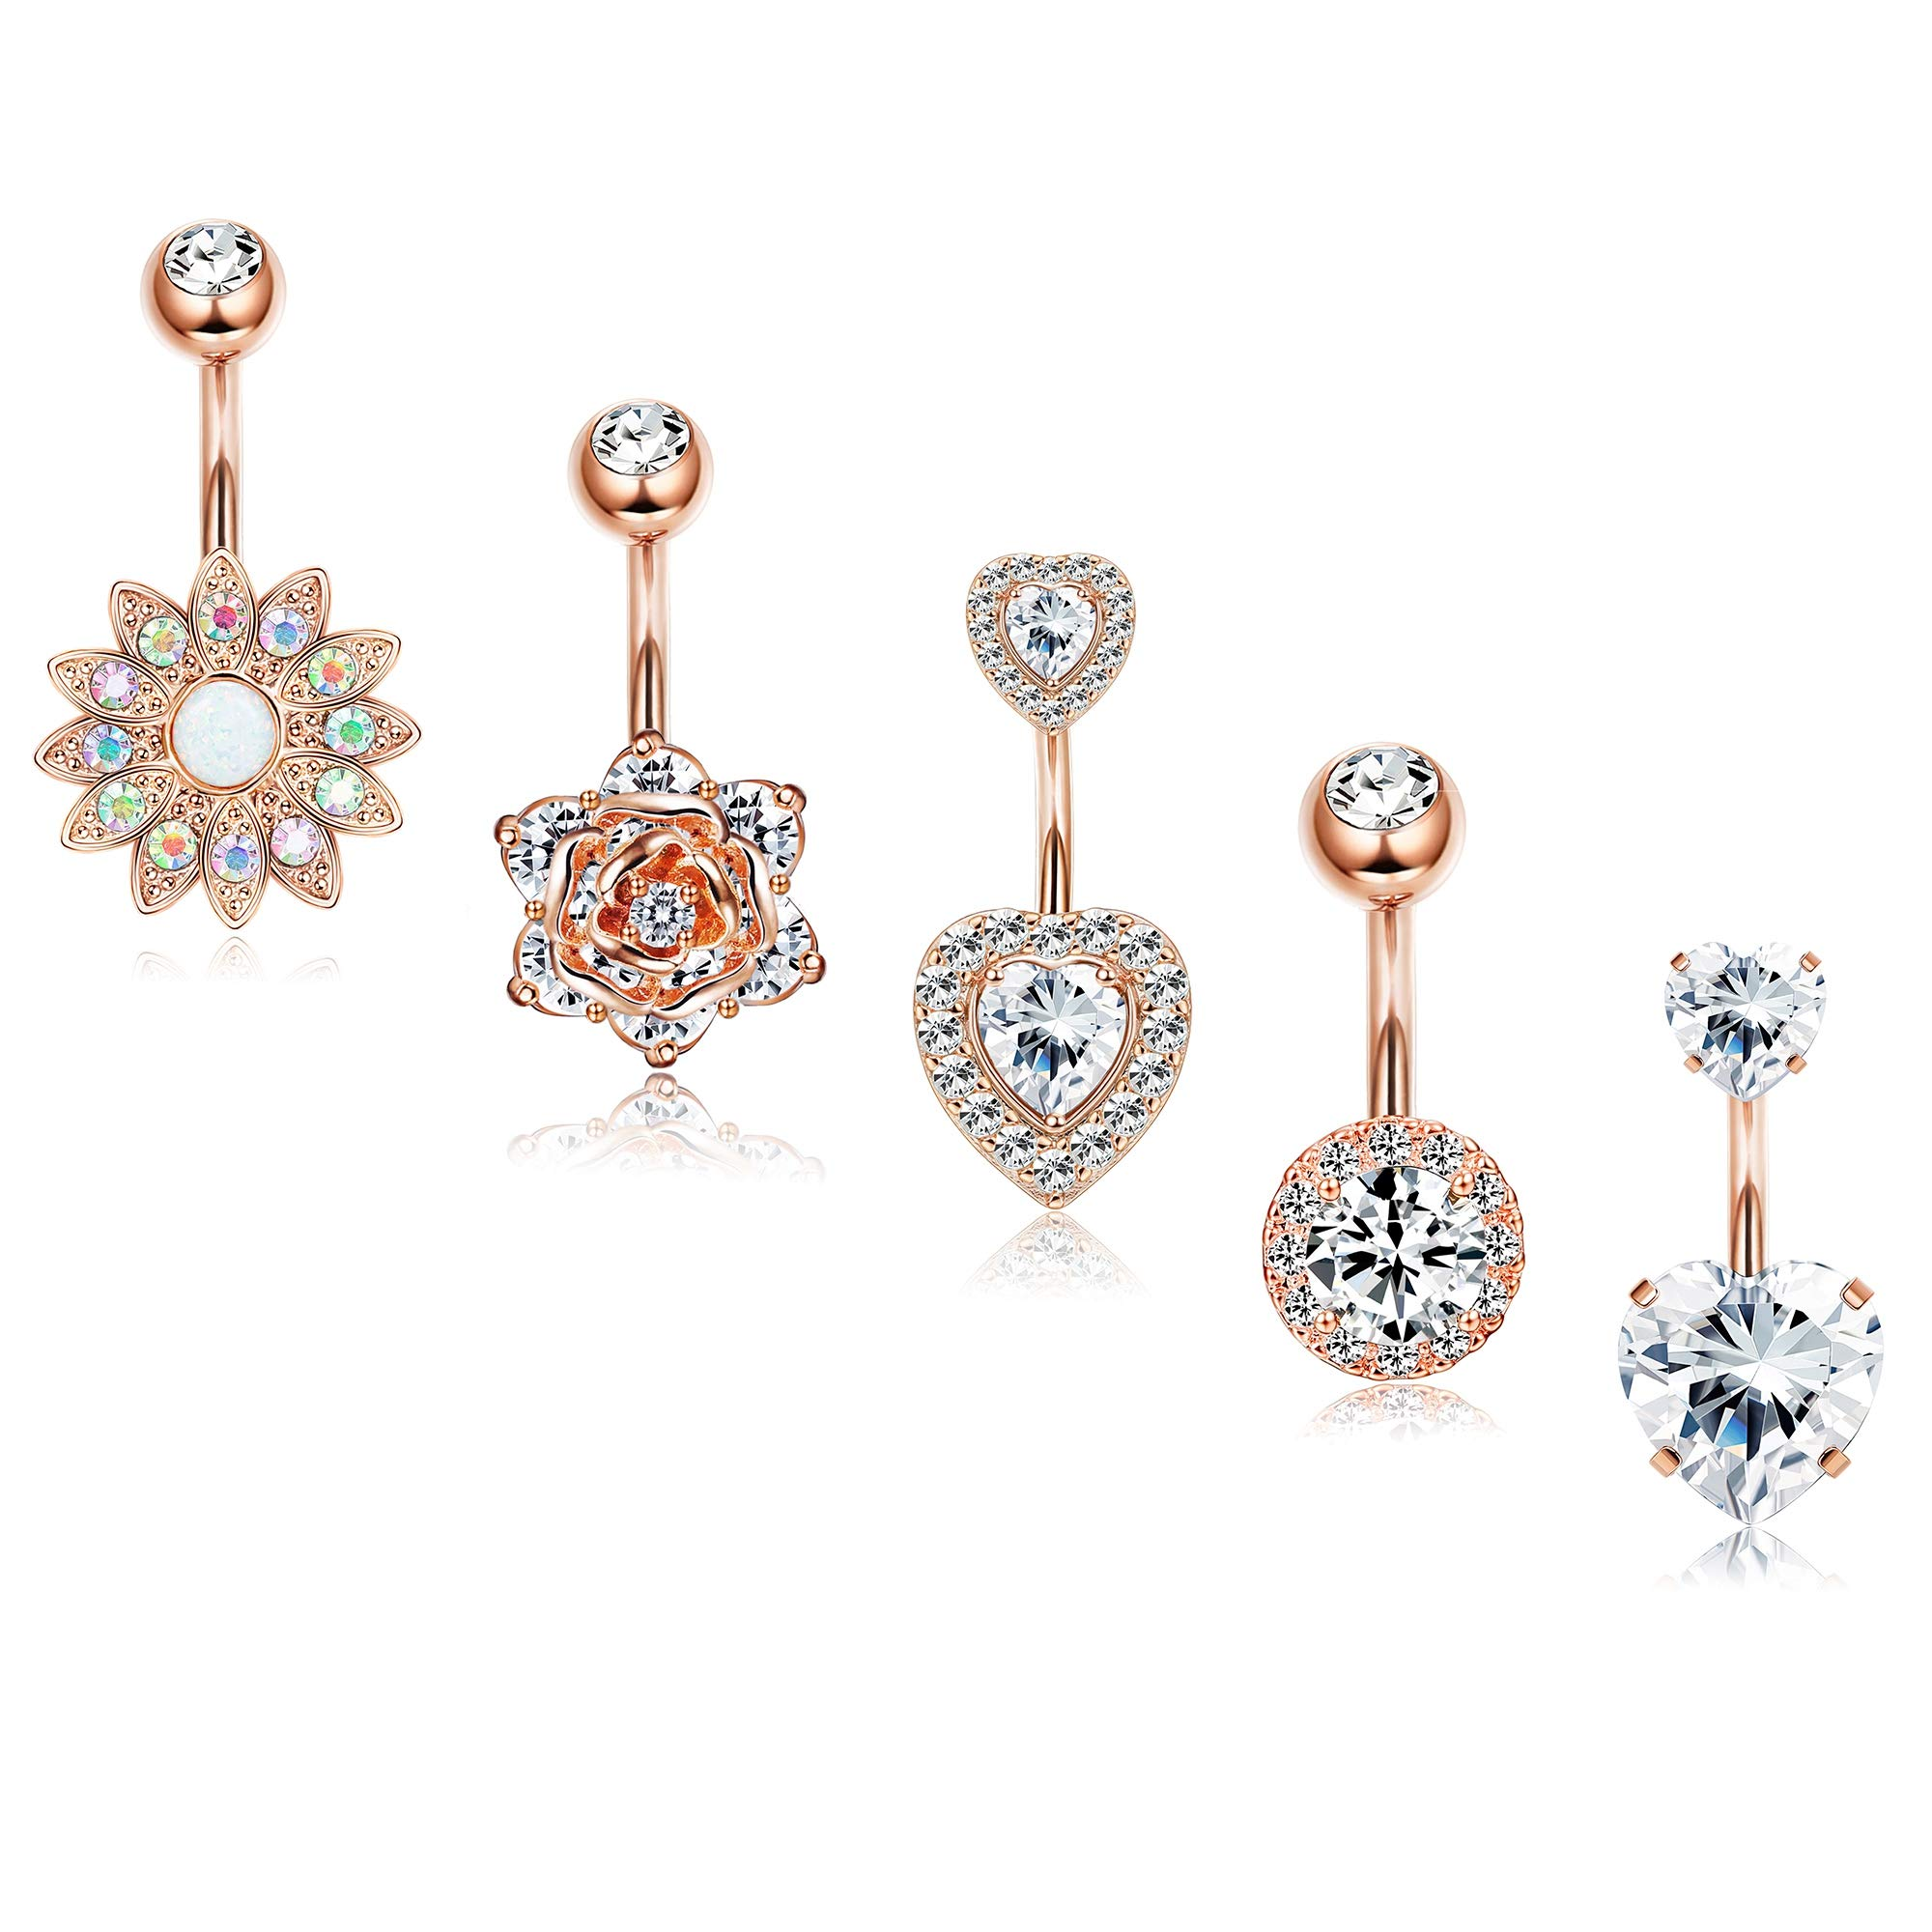 Finrezio 5Pcs 14G Belly Button Rings Surgical Steel Sunflower Flower Rose Heart CZ Navel Ring Set Rose Gold Plated Belly Piercings Body Jewelry by Finrezio